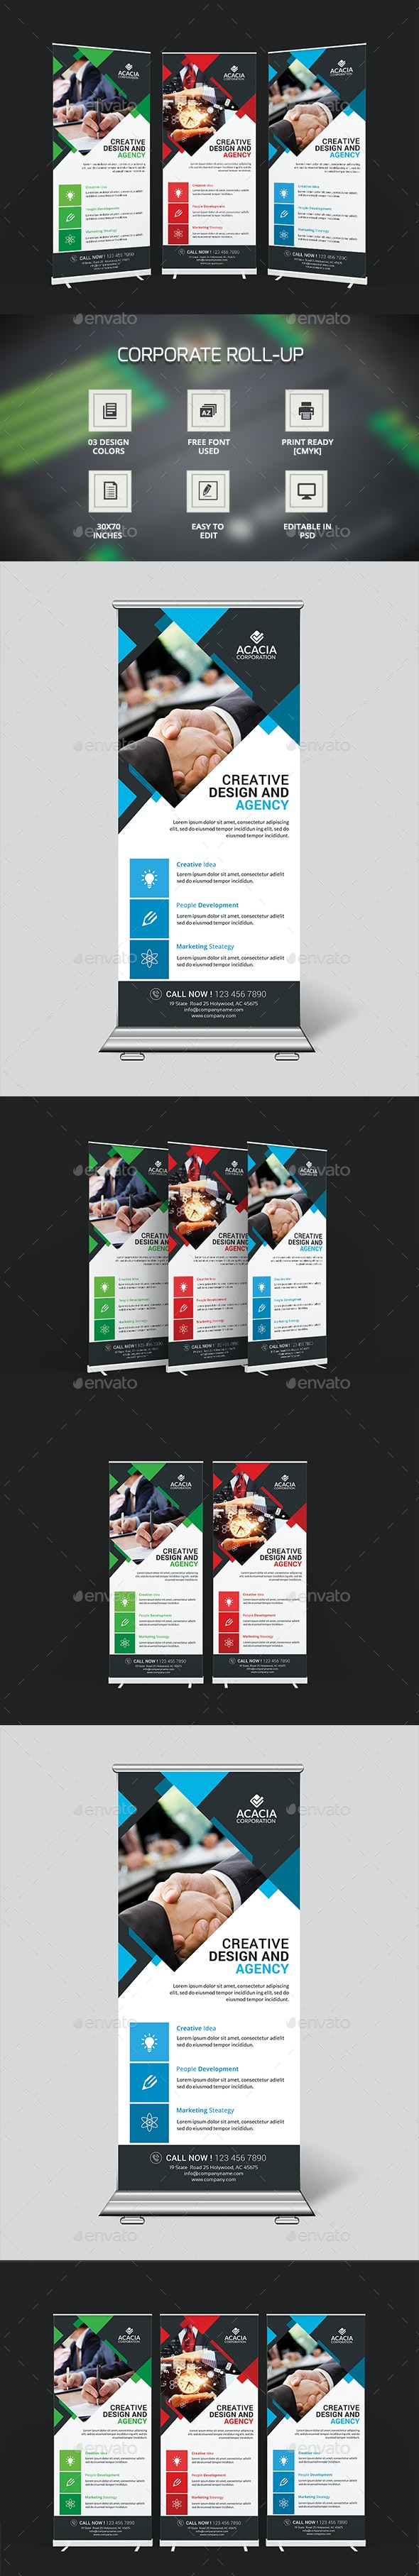 Simple Roll-Up Banners - Signage Print Templates